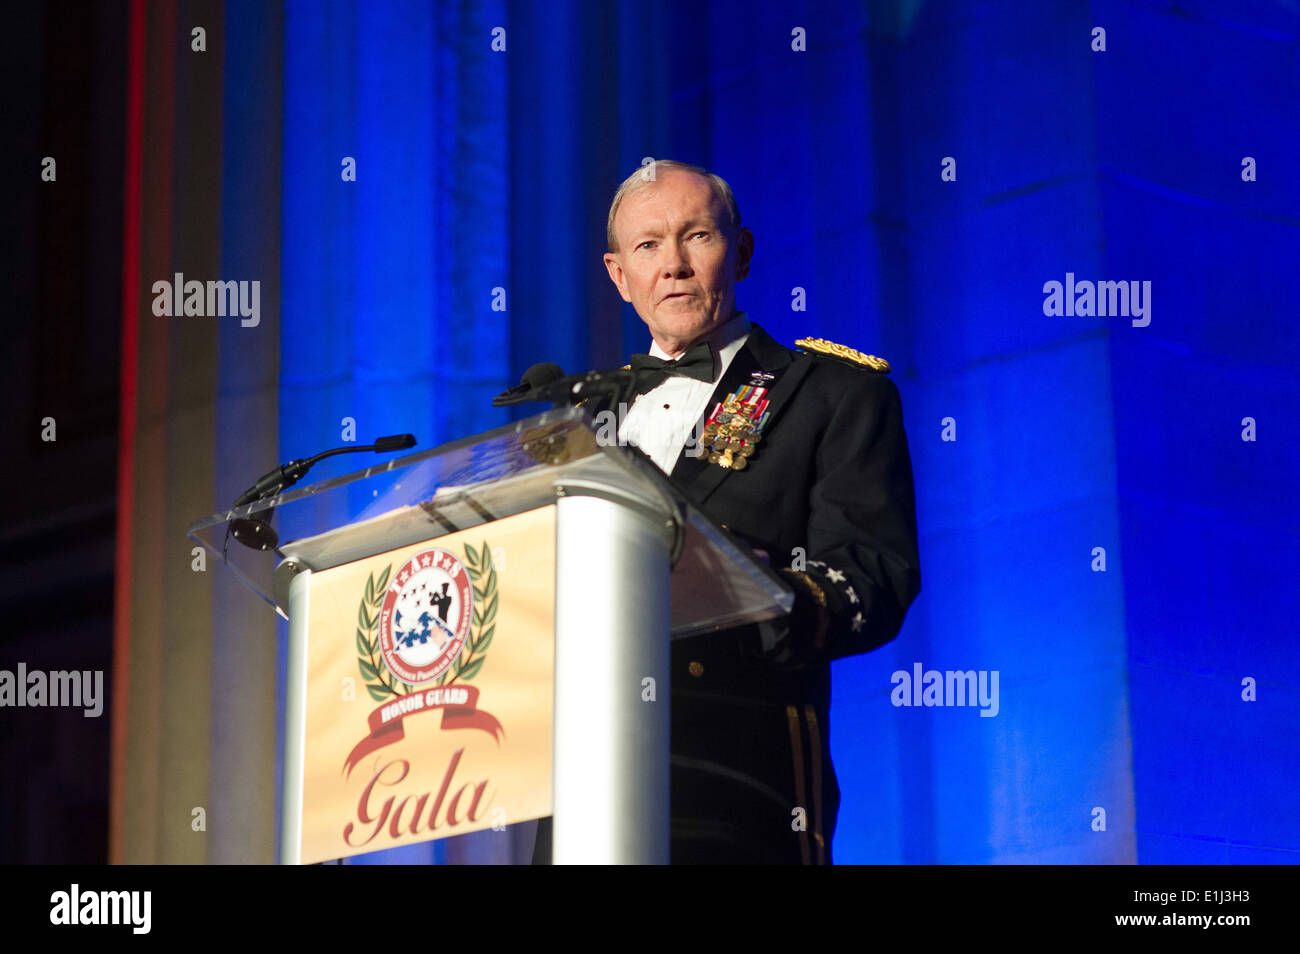 U.S. Army Gen. Martin E. Dempsey, the chairman of the Joint Chiefs of Staff, gives the keynote address during the 2013 Tragedy - Stock Image